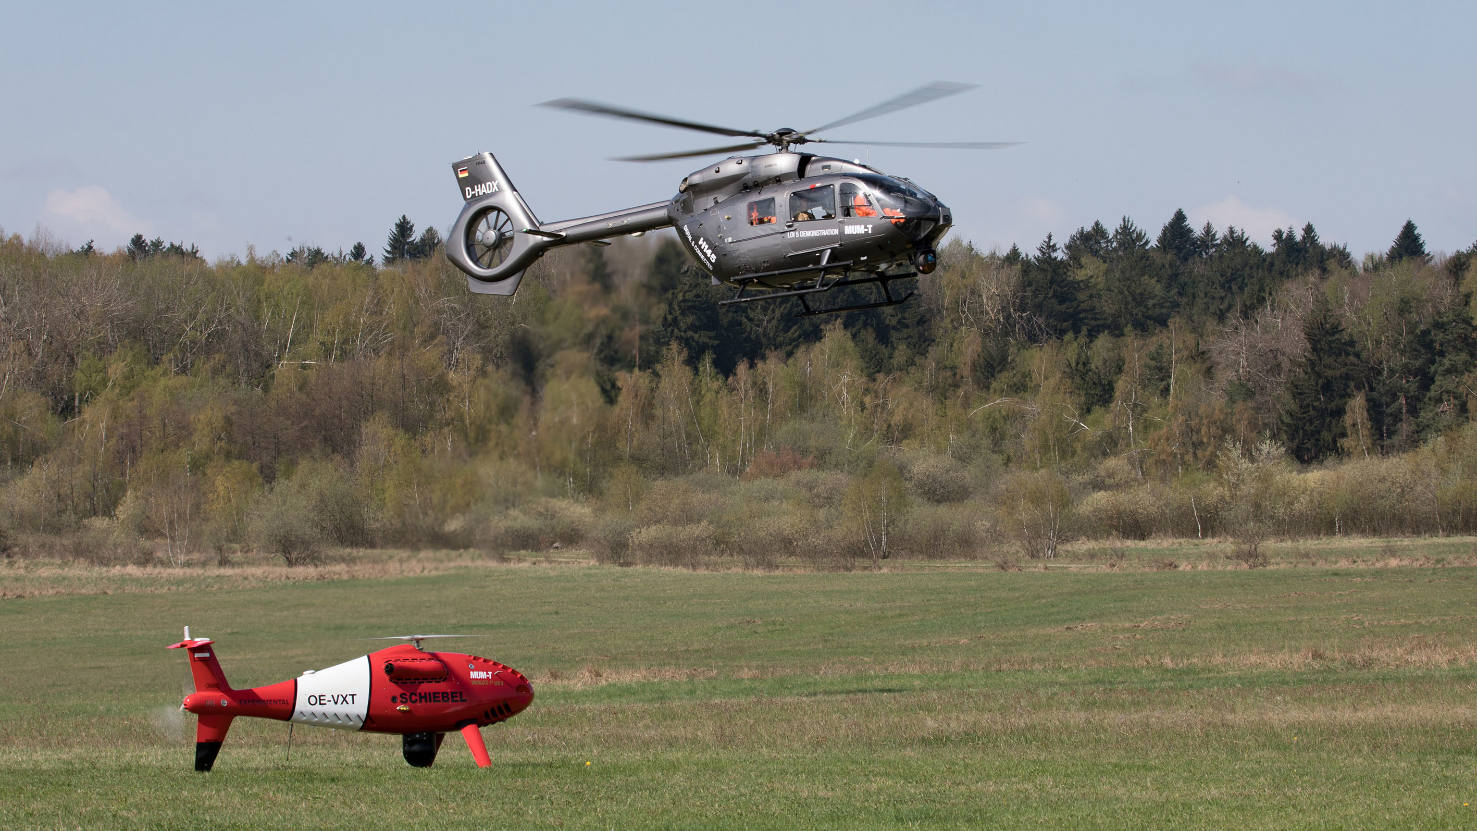 Airbus, Schiebel explore manned-unmanned teaming